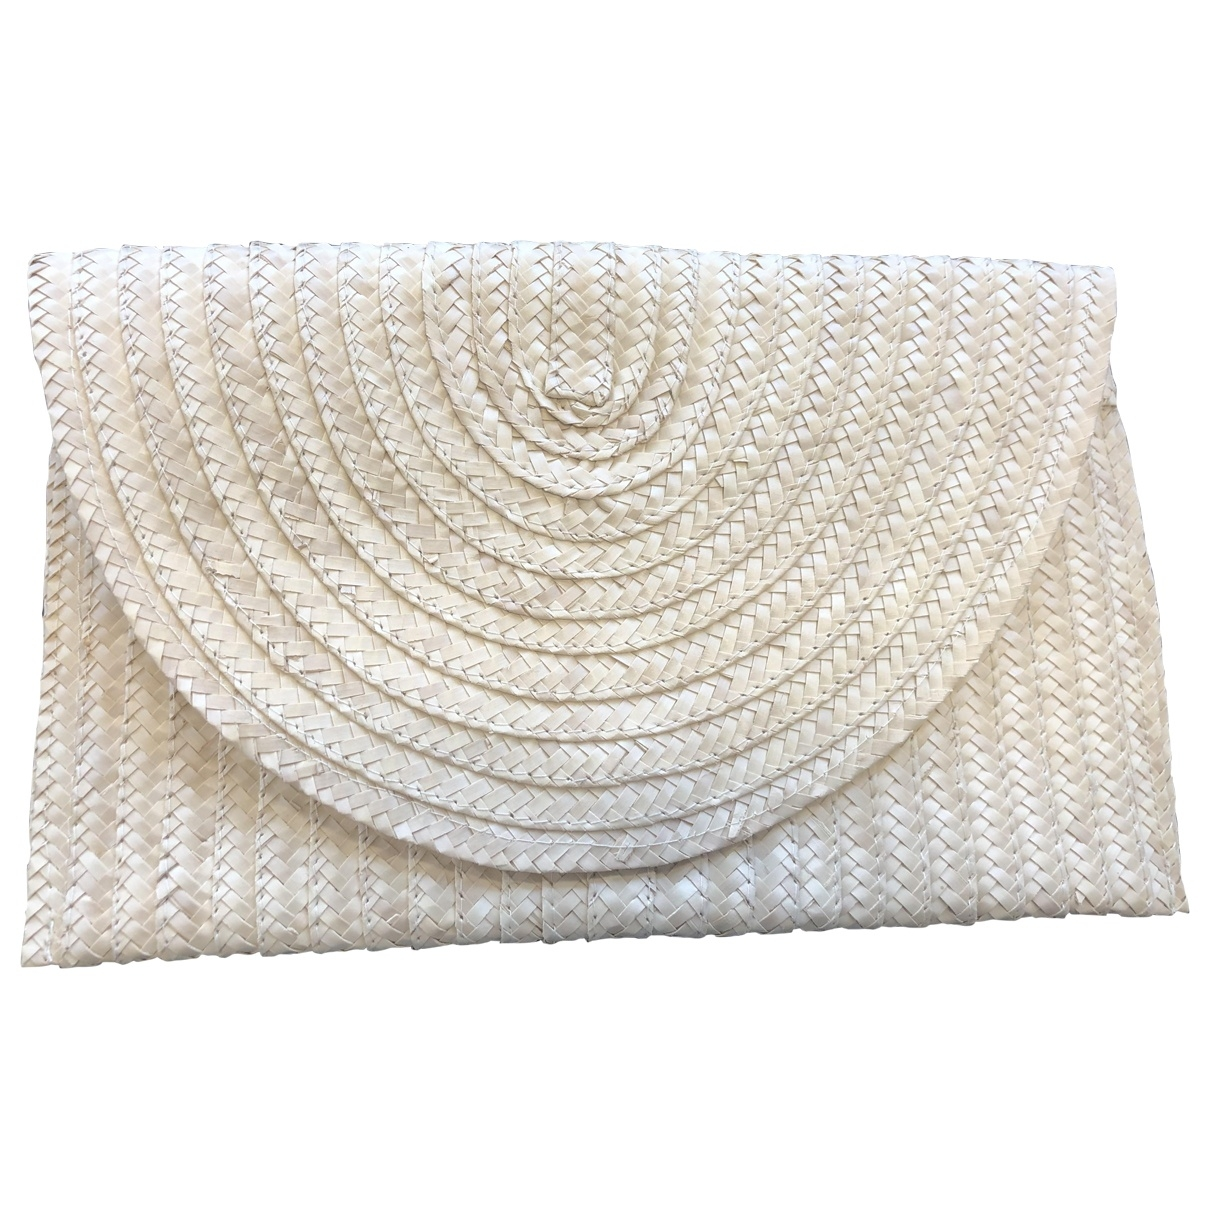 Non Signé / Unsigned \N Beige Wicker Clutch bag for Women \N